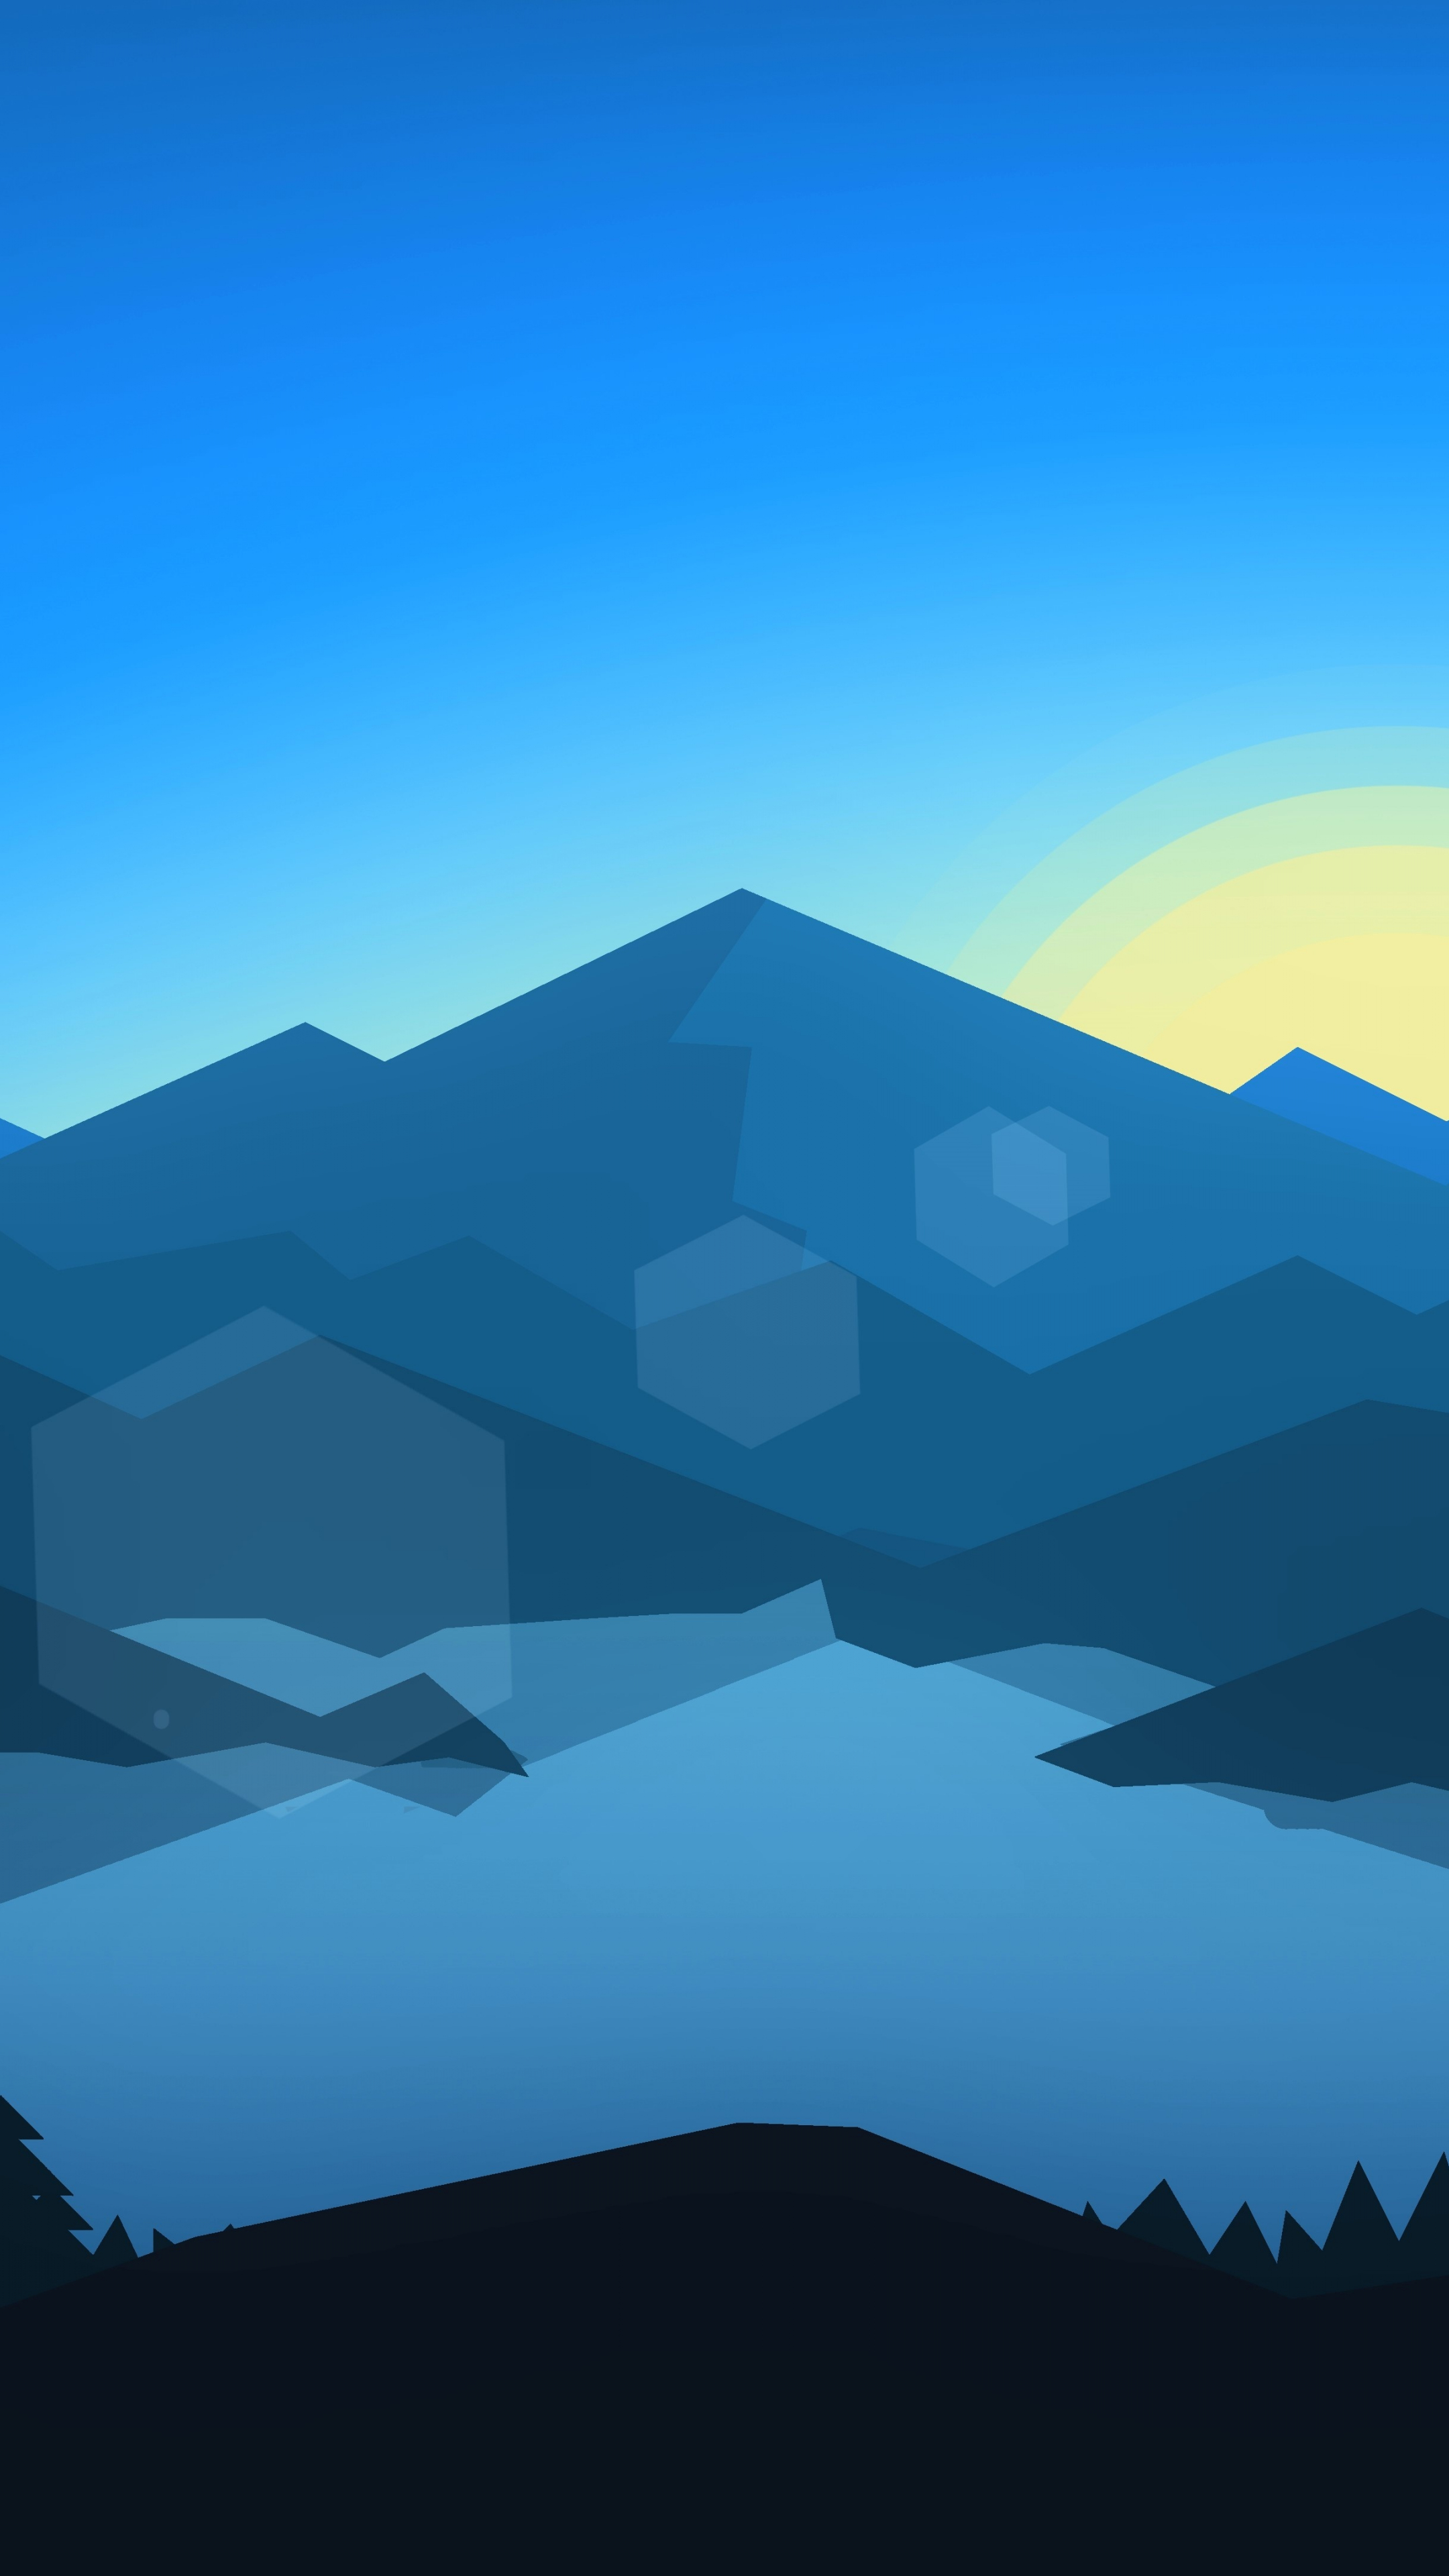 Forest, mountains, sunset, cool weather, minimalism, 2160x3840 wallpaper